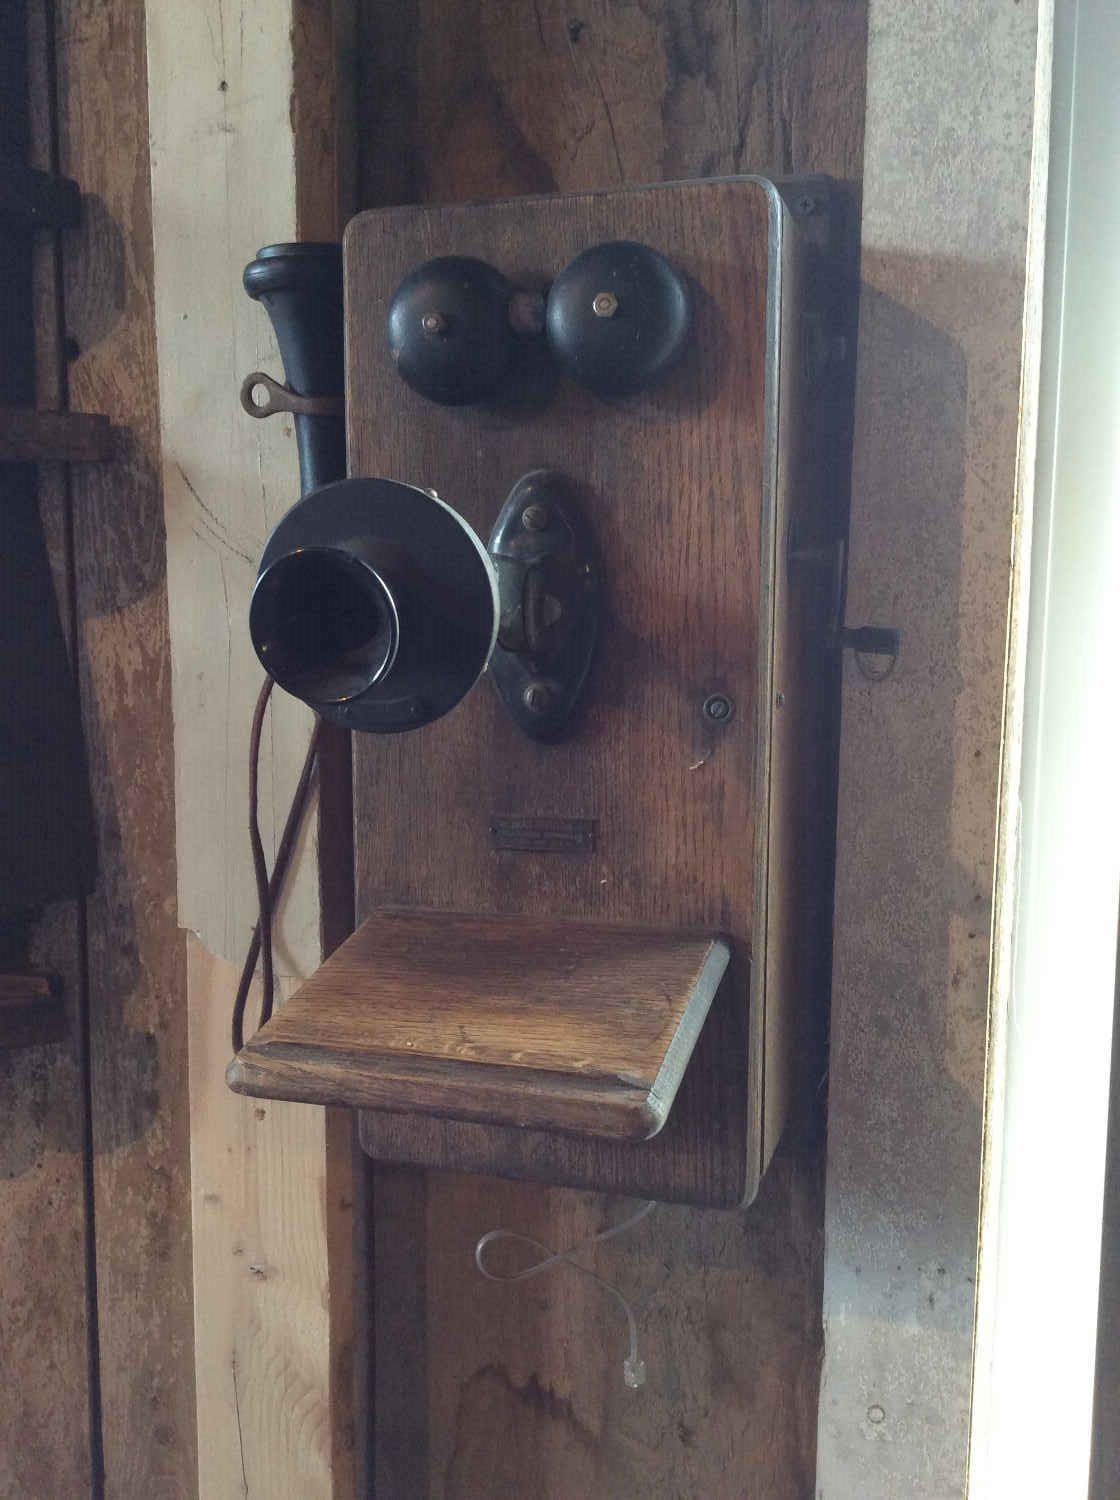 The Dean Electric Co. Telephone Apparatus